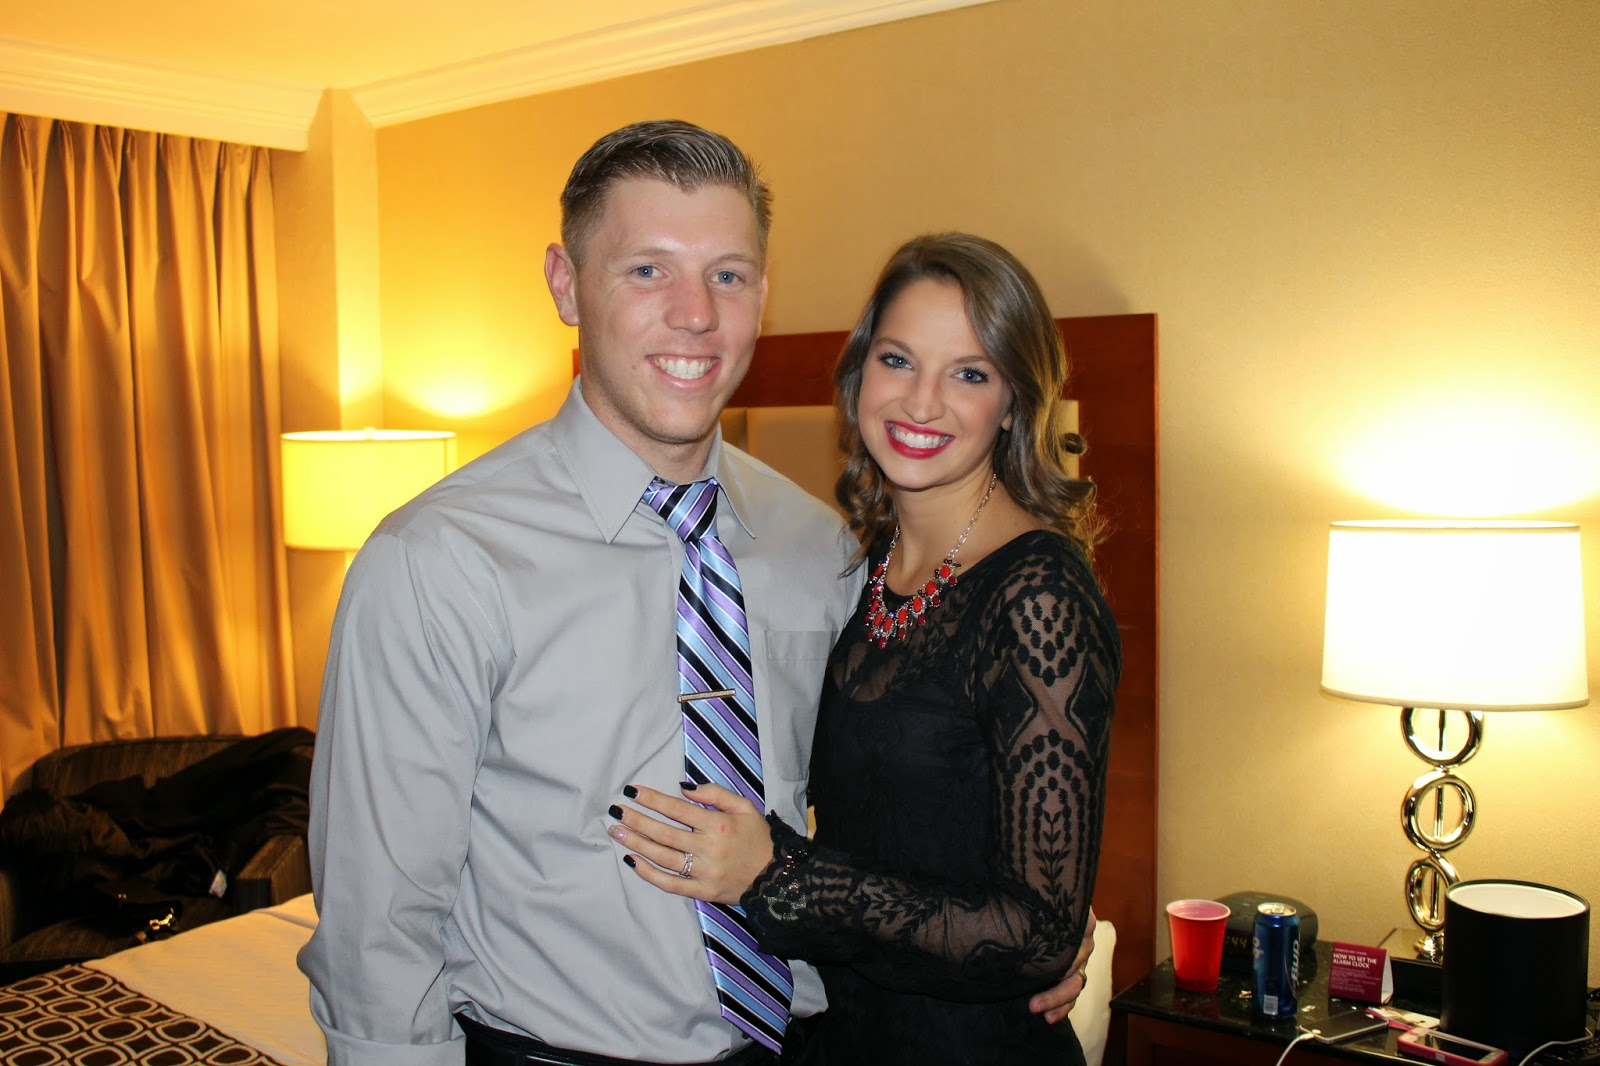 Jake and Karlyn - New Years Eve - Blog With The Browns